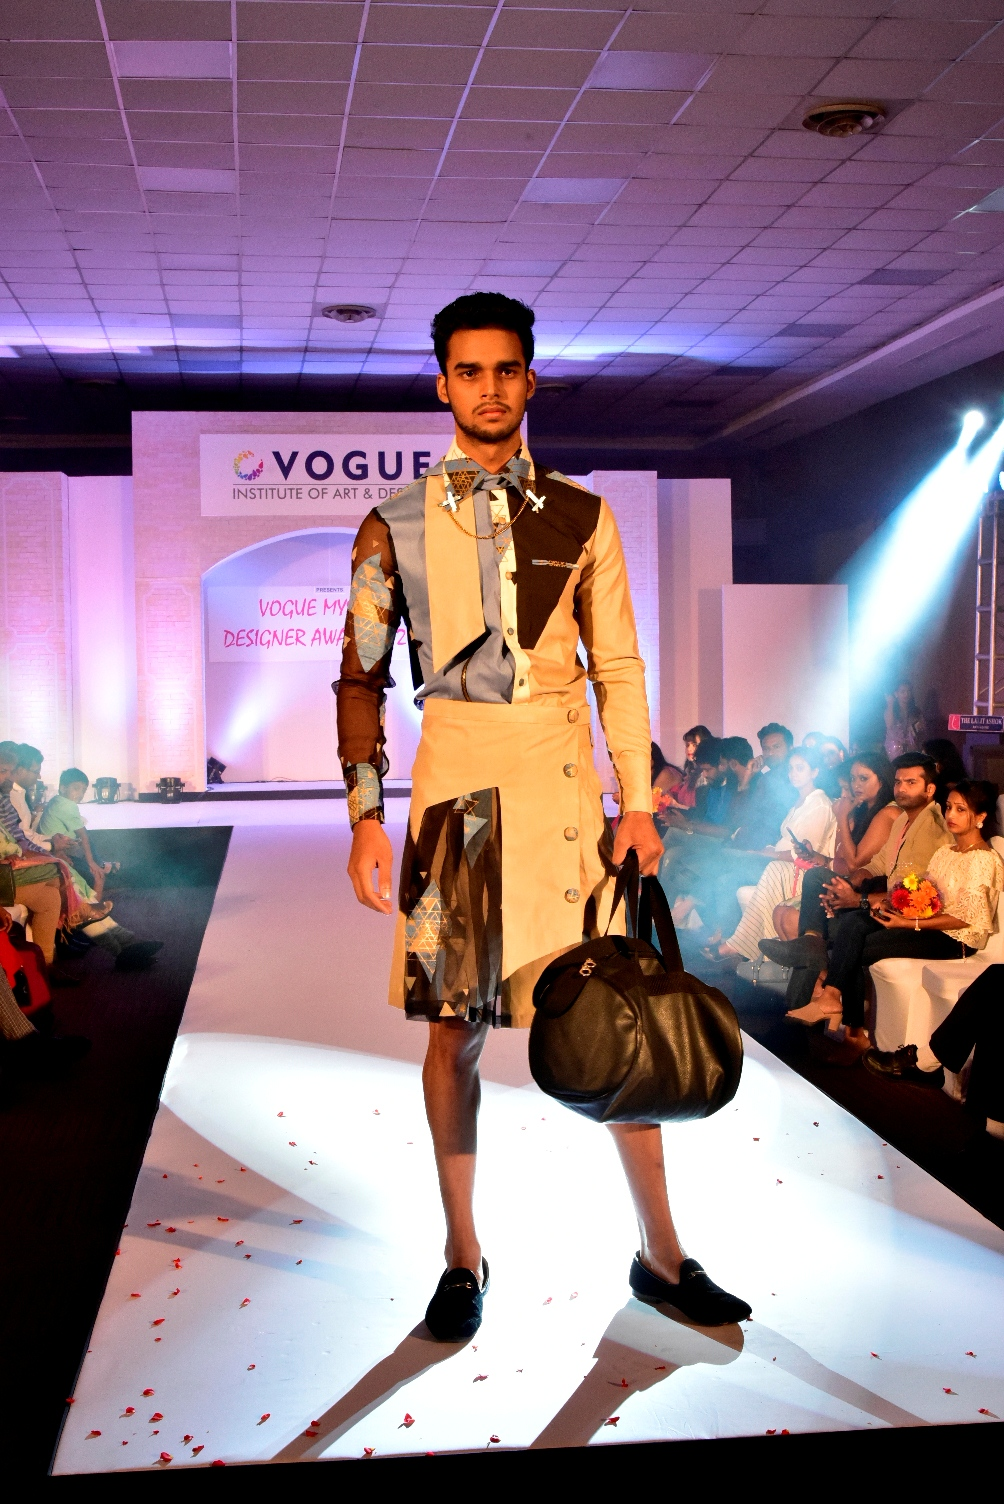 Designed by Karishma Shah, student at Vogue Institute of Art & Design